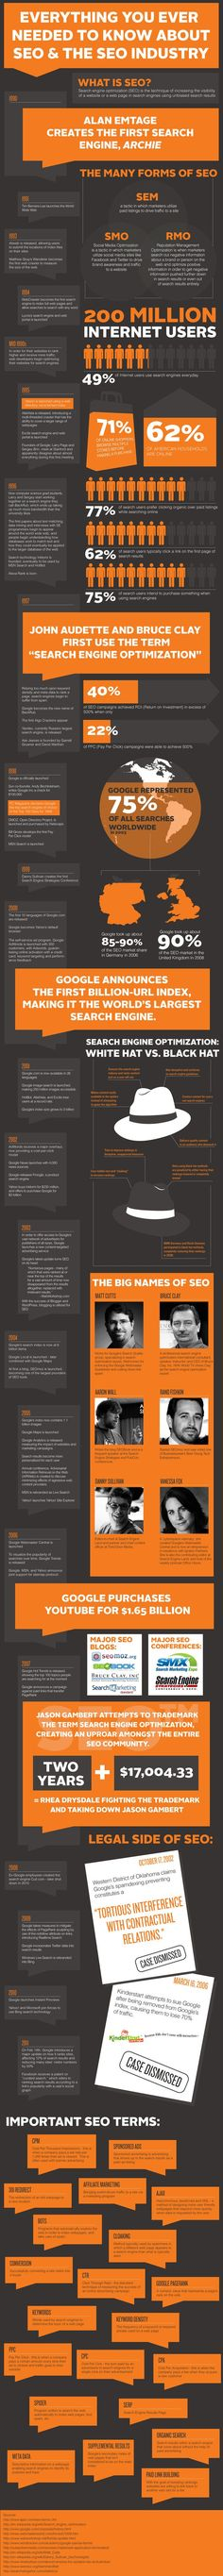 All you need to know about #SEO